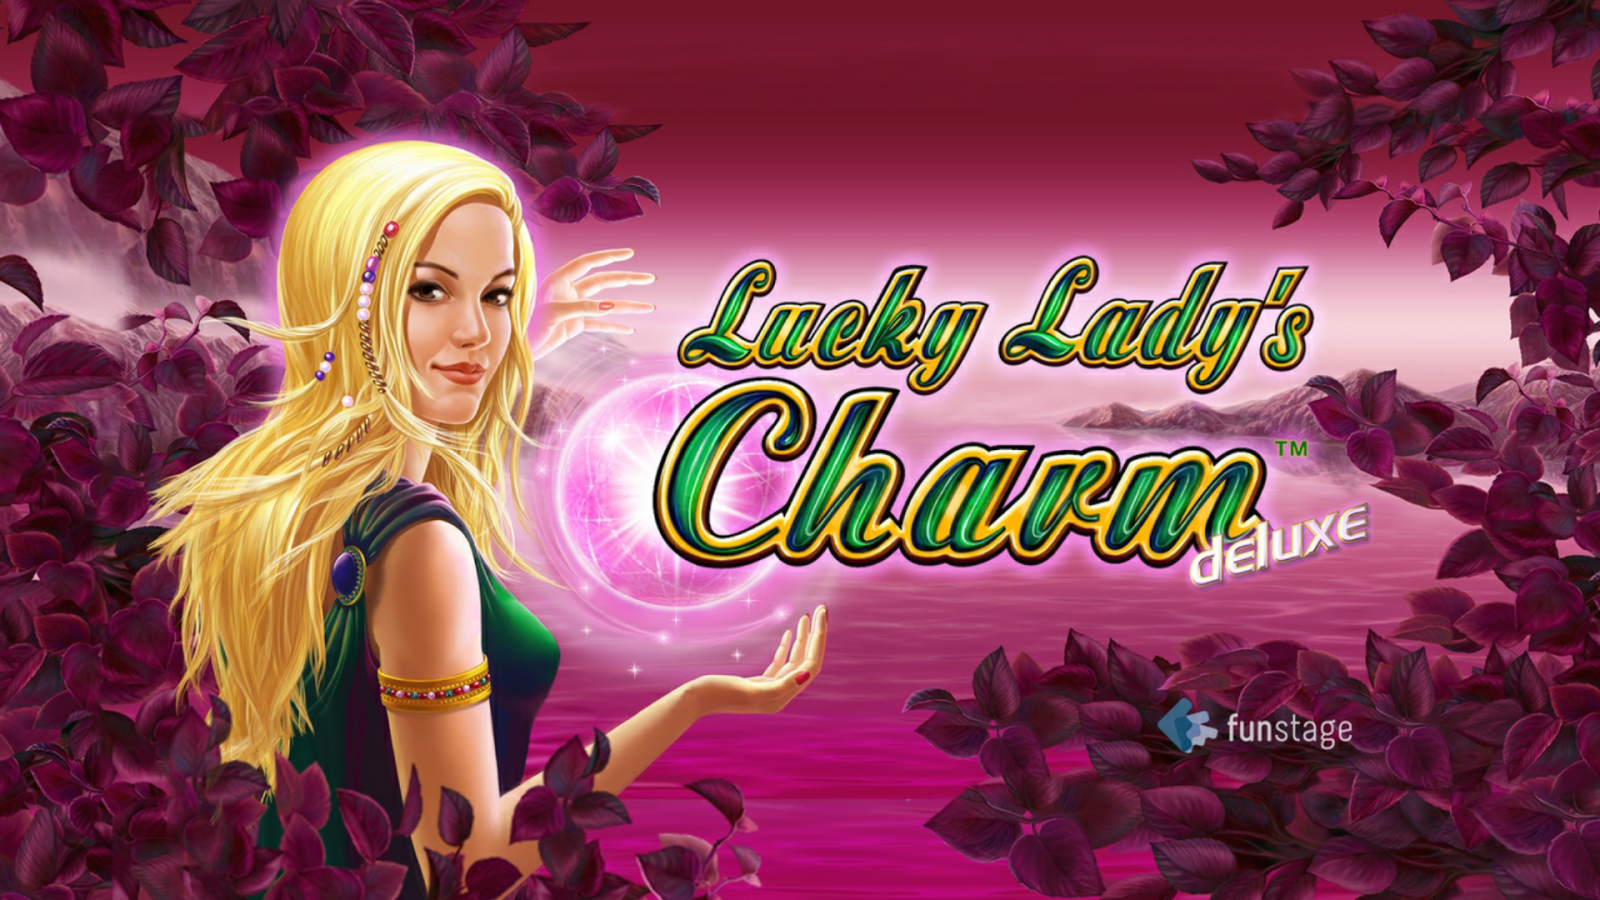 online casino lucky lady charm slot